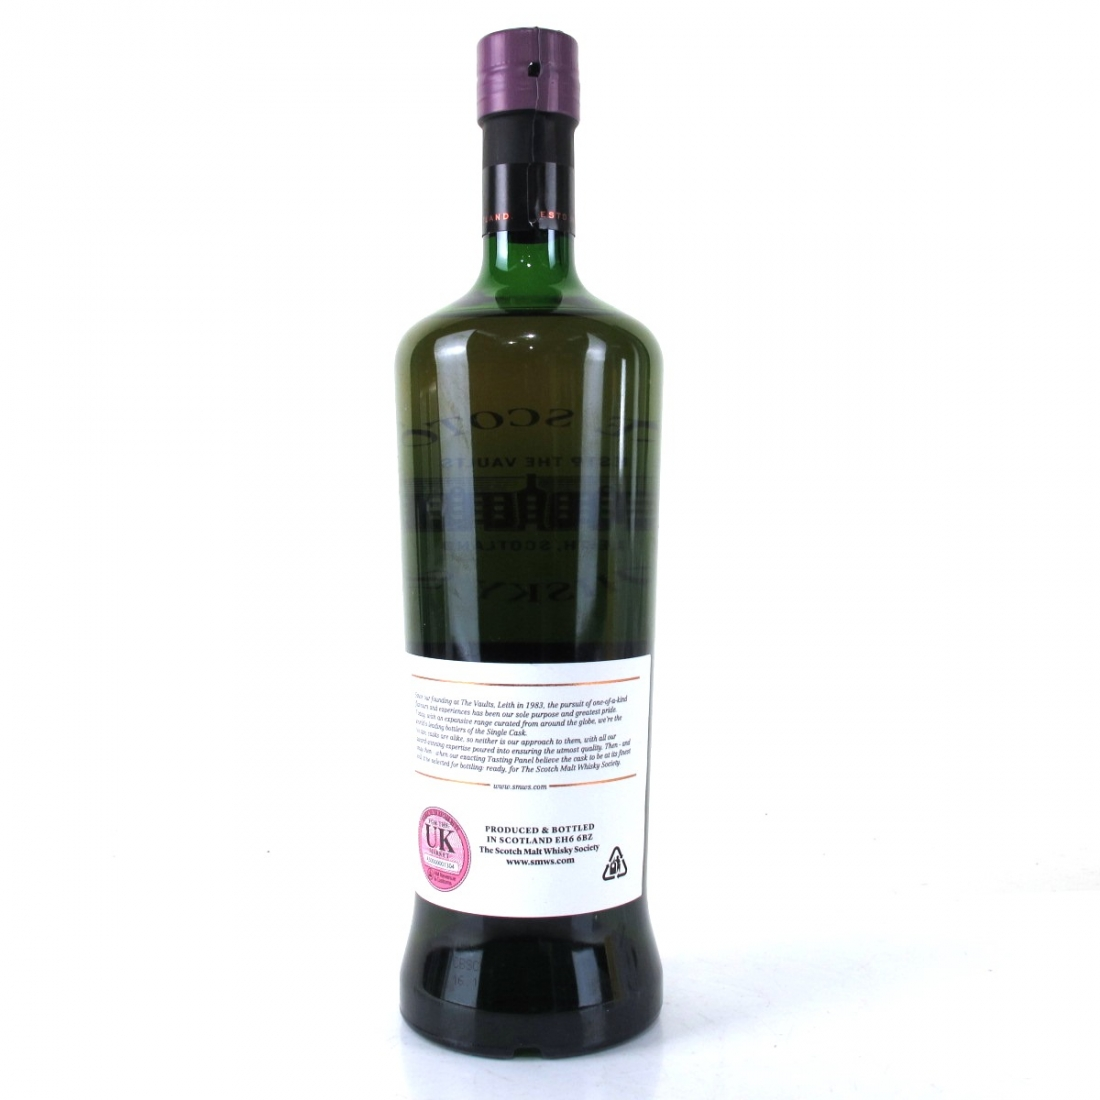 Auchentoshan 2000 SMWS 16 Year Old 25.61